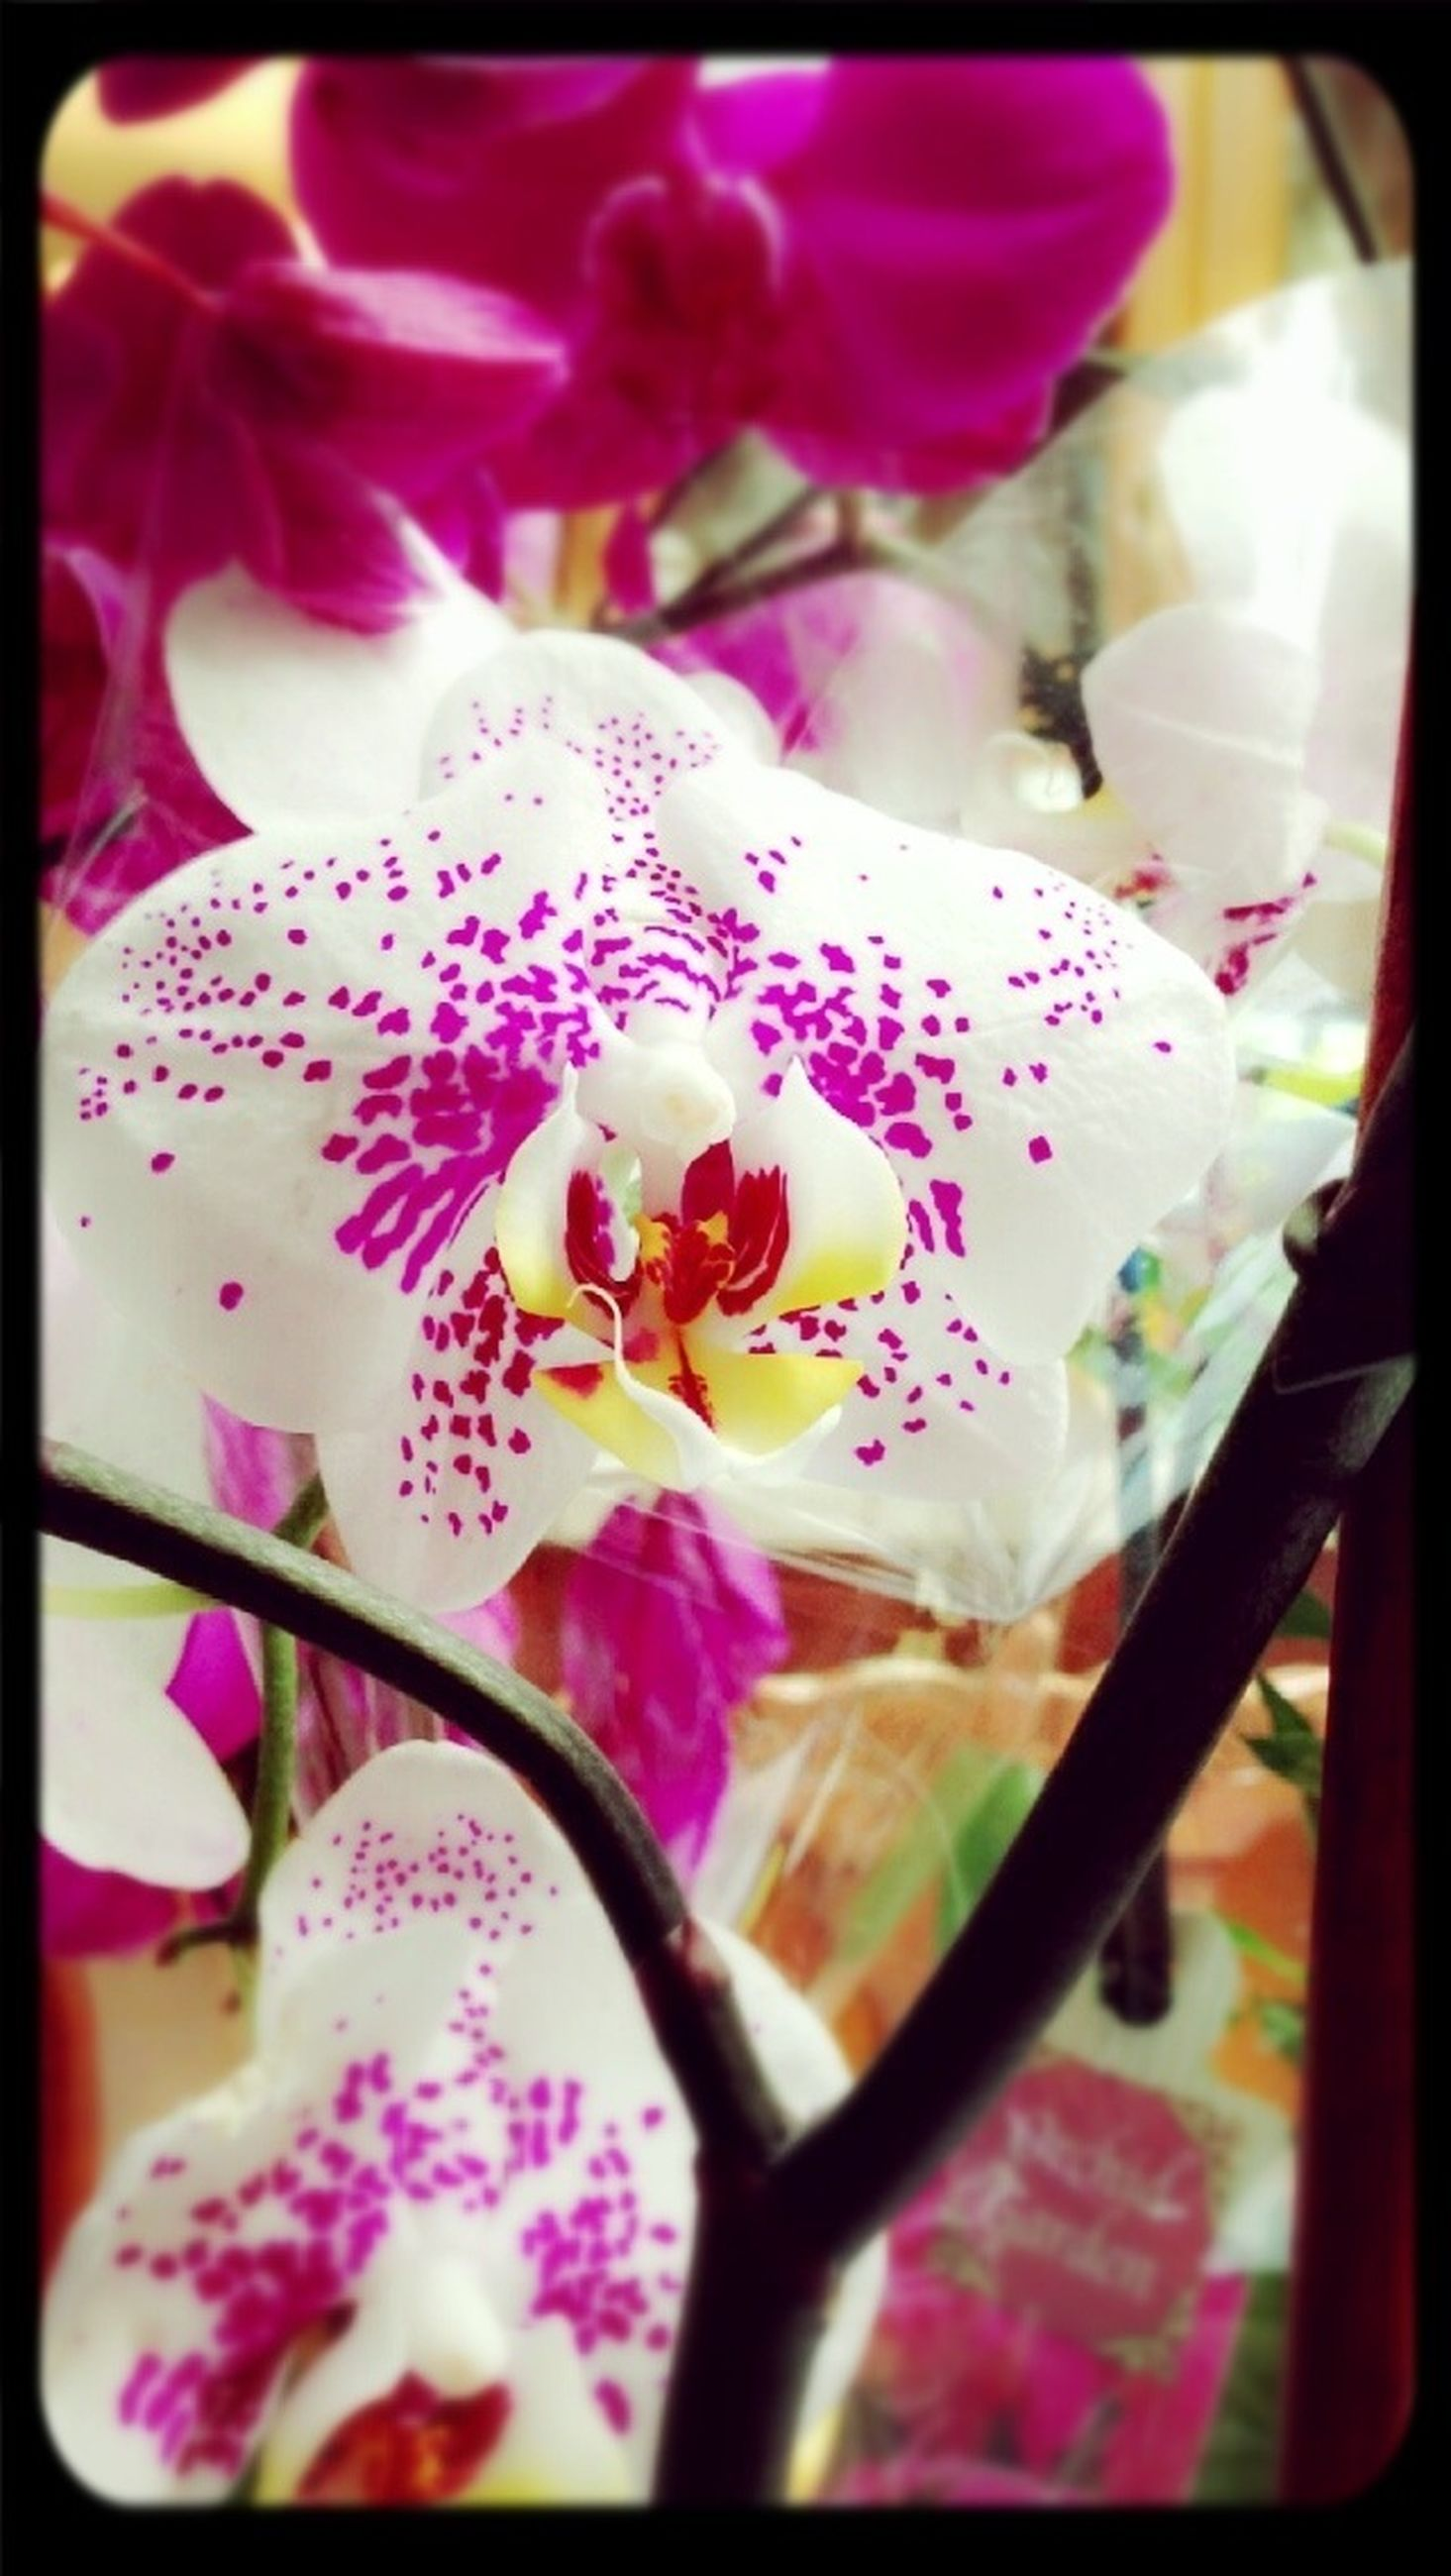 flower, transfer print, petal, flower head, fragility, auto post production filter, freshness, indoors, close-up, beauty in nature, focus on foreground, pink color, selective focus, nature, blooming, growth, plant, in bloom, blossom, vase